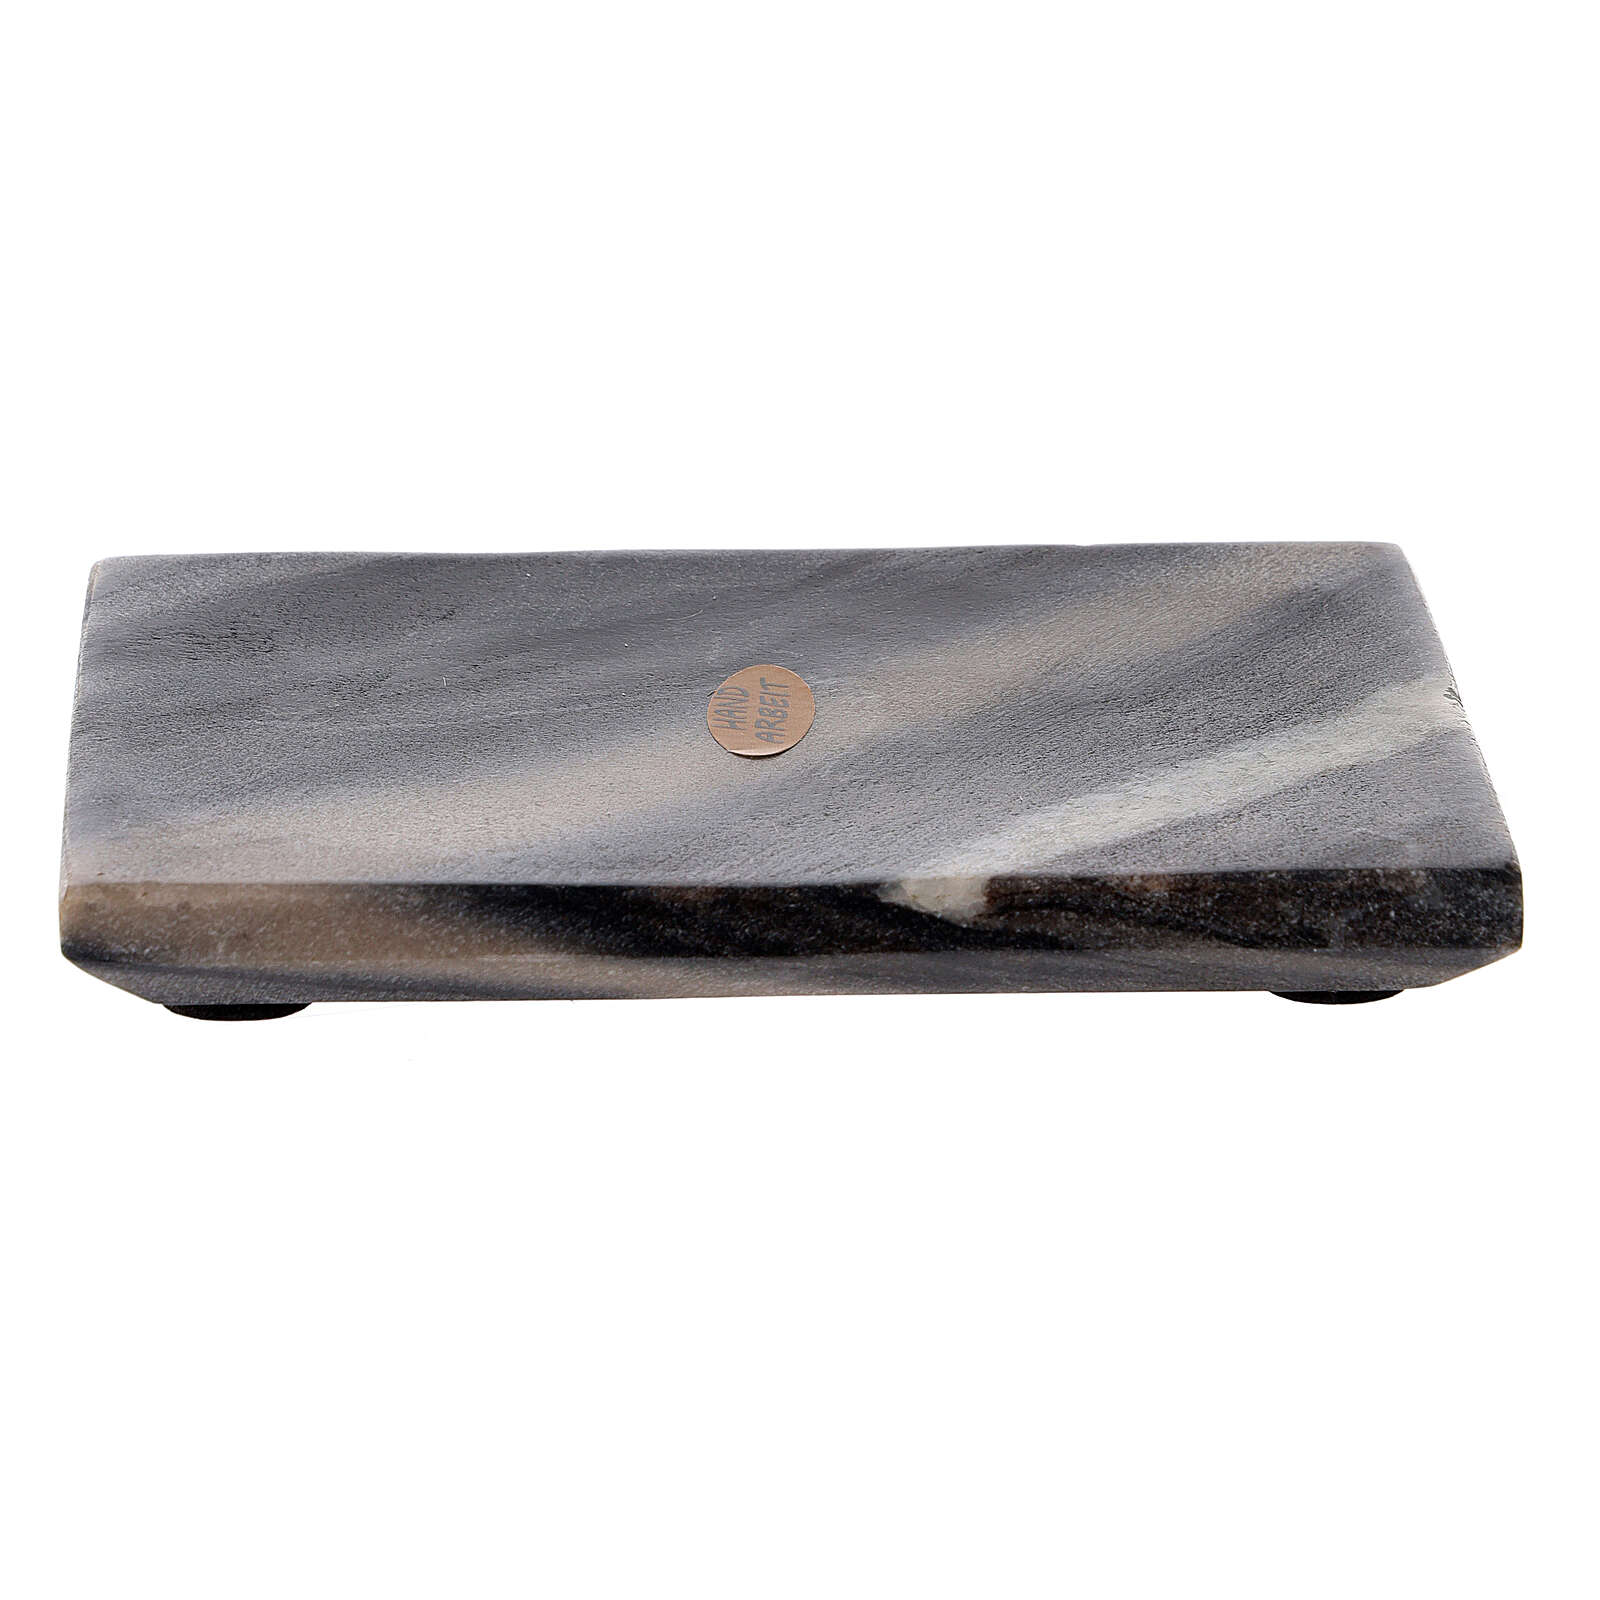 Rectangular stone candle holder 5x4 in 3